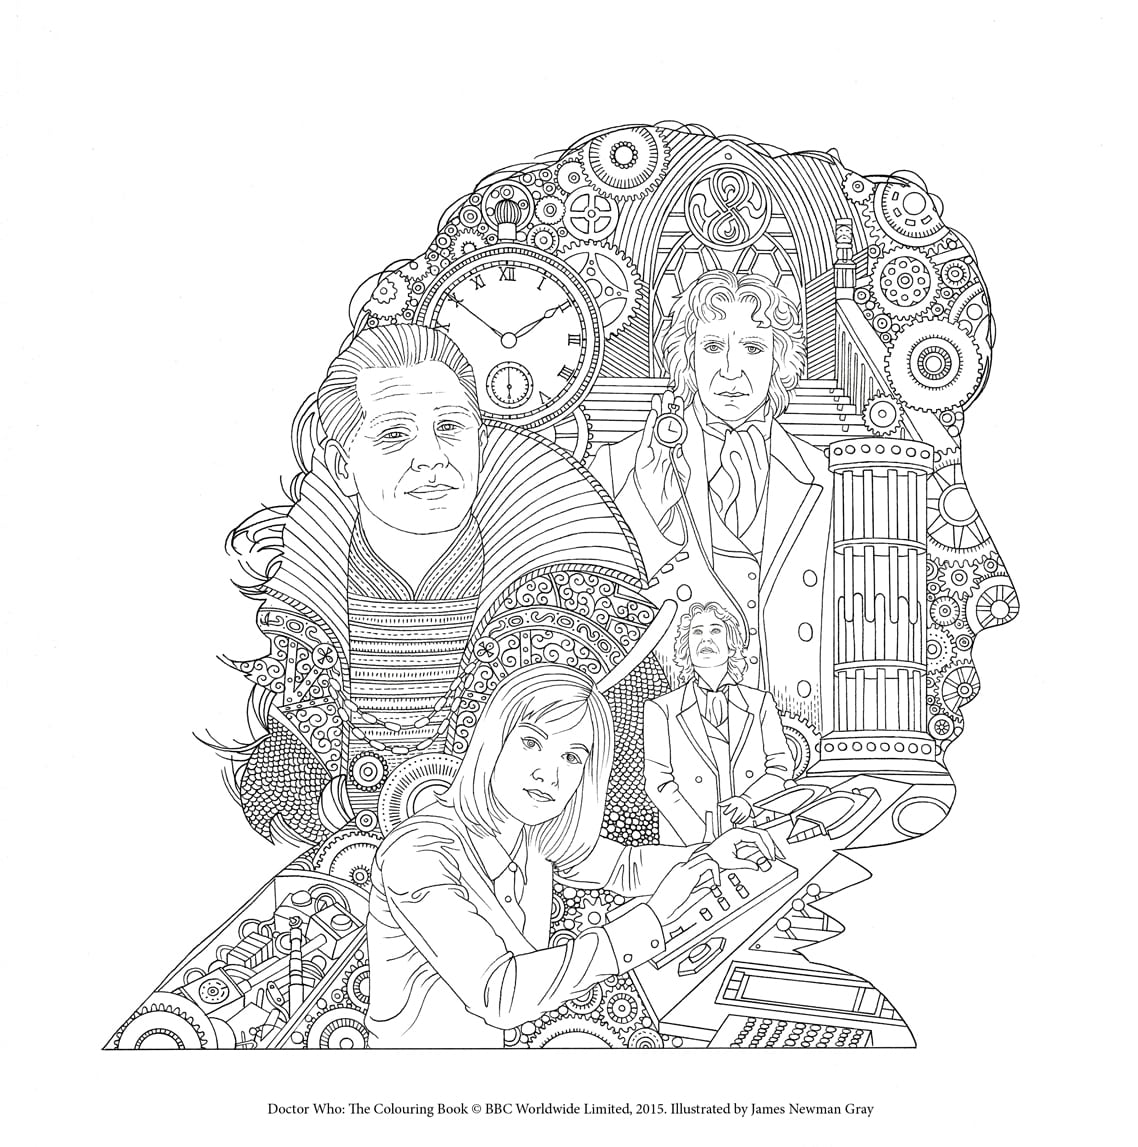 Coloring Doctor Who The Colouring Fabulous Dr Coloring Book Colors